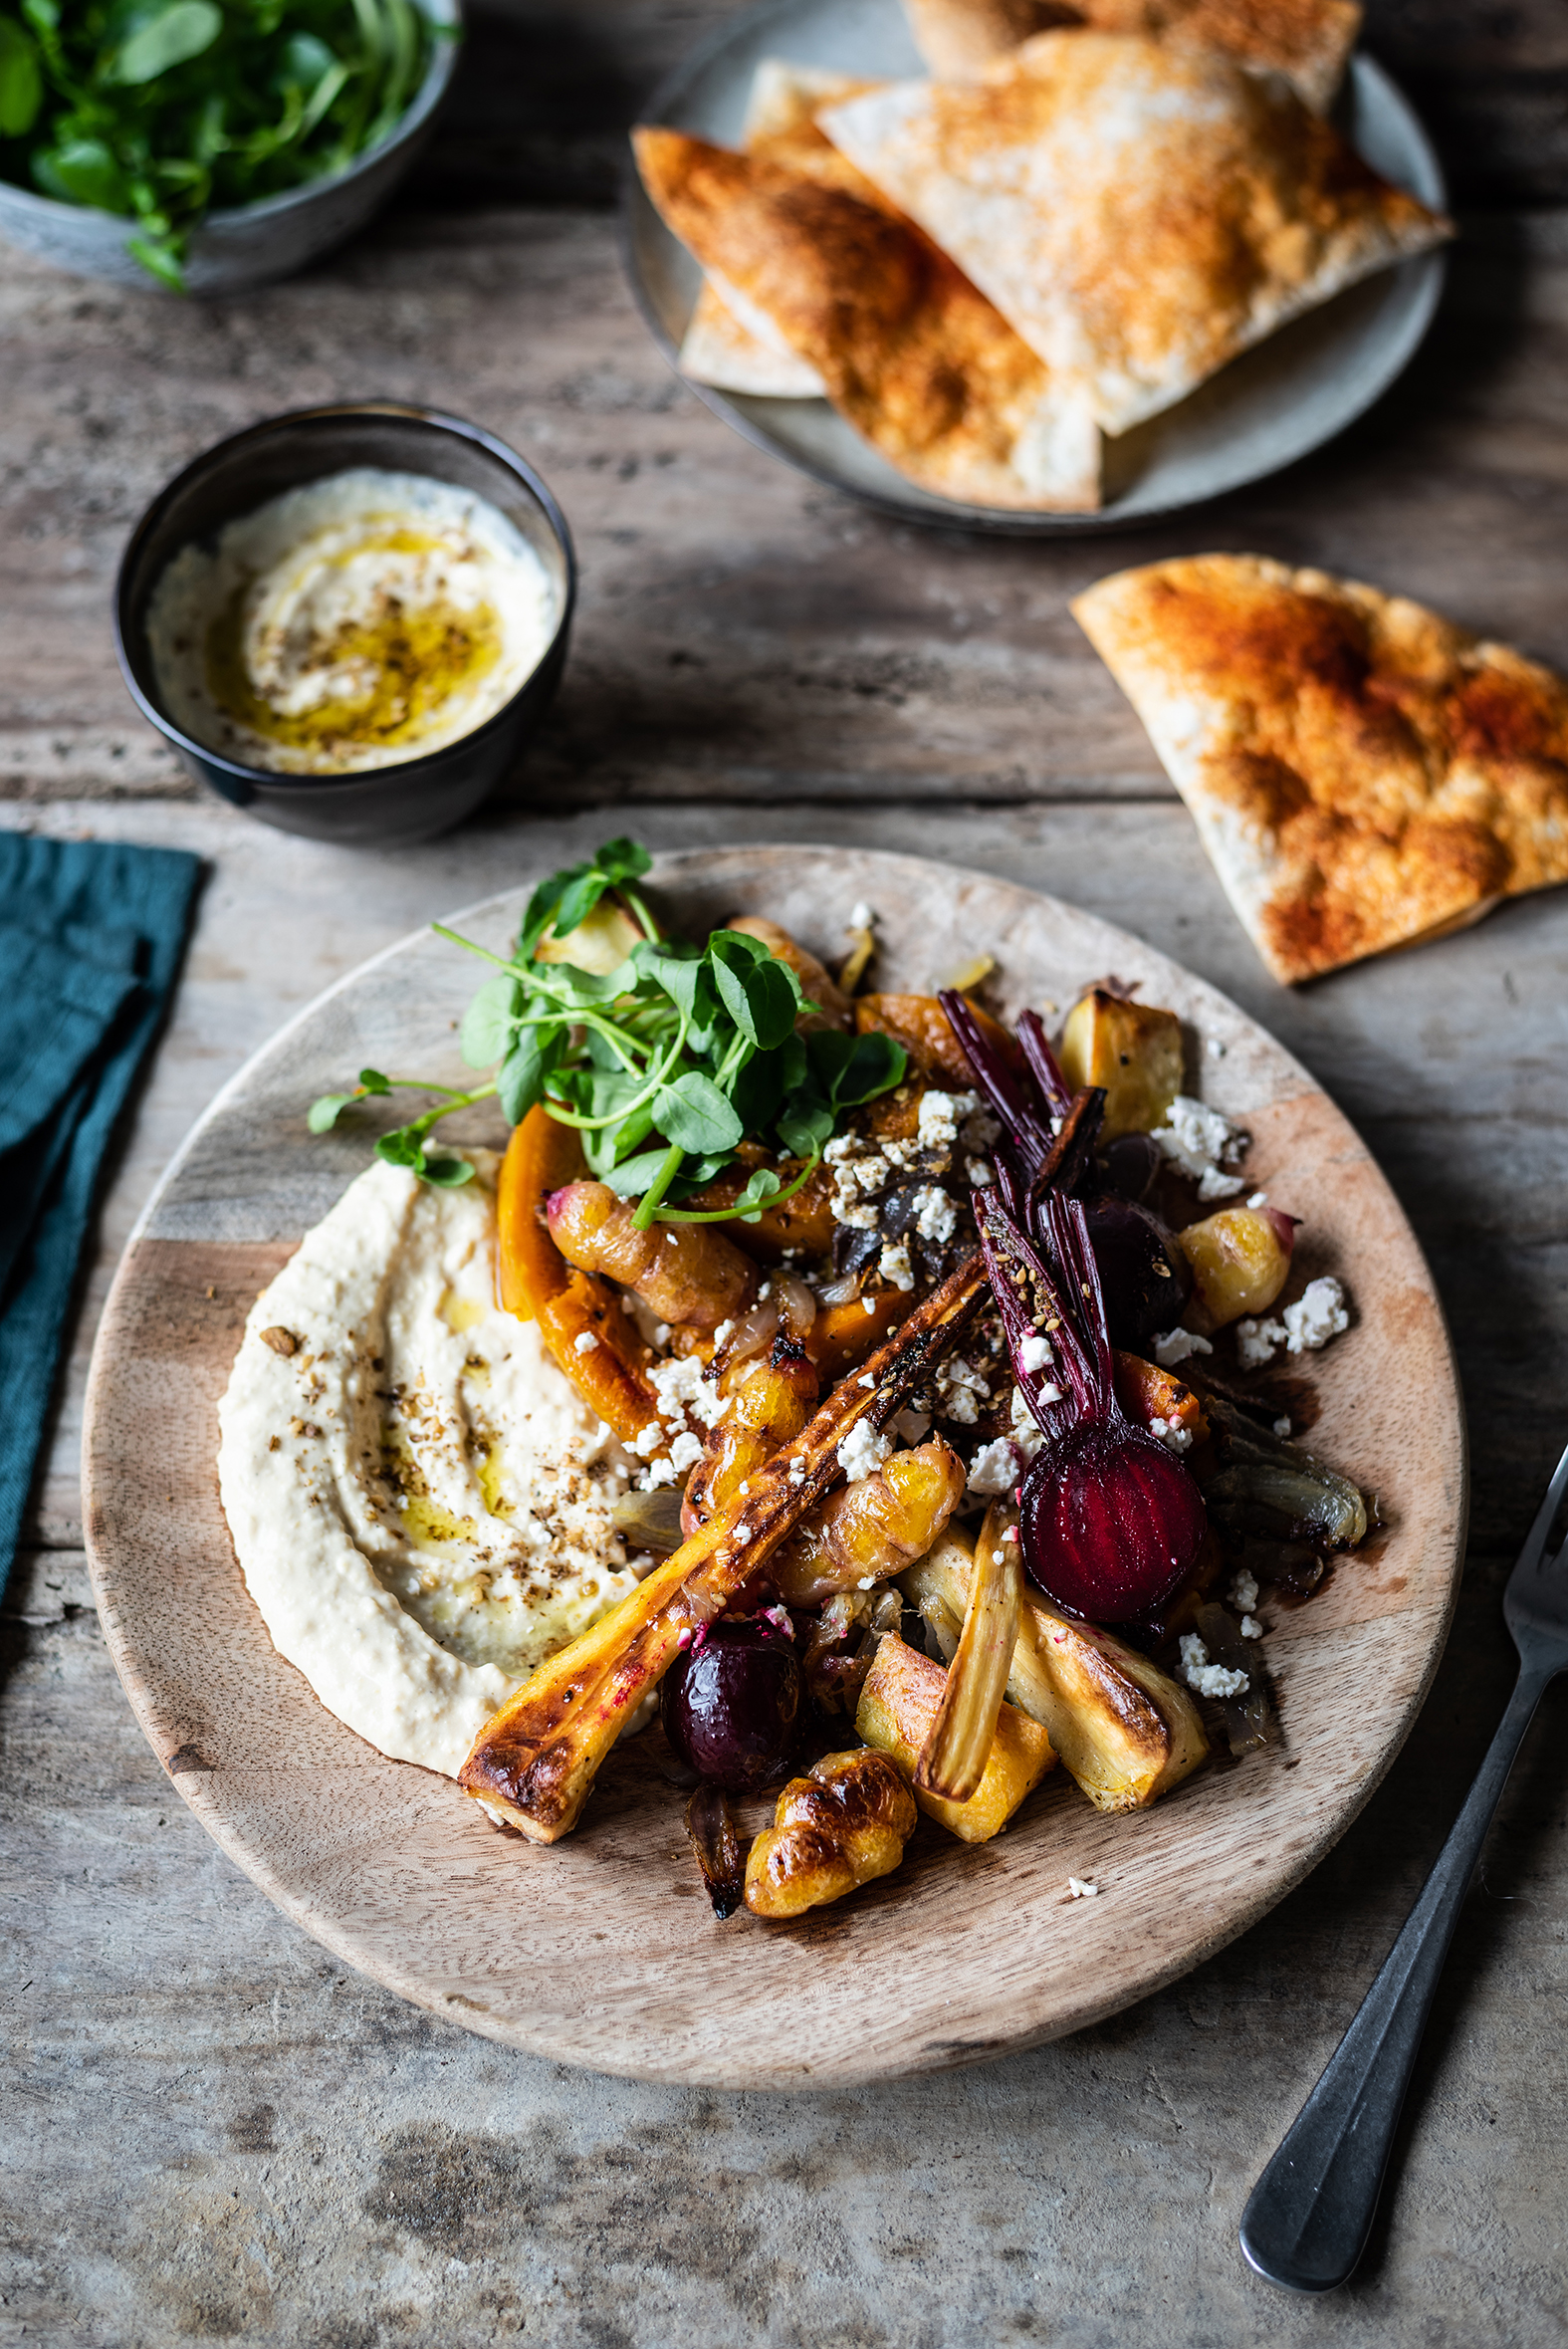 WINTER VEGETABLE SALAD - Golden and crunchy, roasted root vegetables topped with fragrant dukkah and feta cheese. Serve with a generous spoonful of Lisa's Smokey Hummus and baked tortilla crisps. Alternatively, use leftover roasted vegetables as a quick and easy lunch idea.